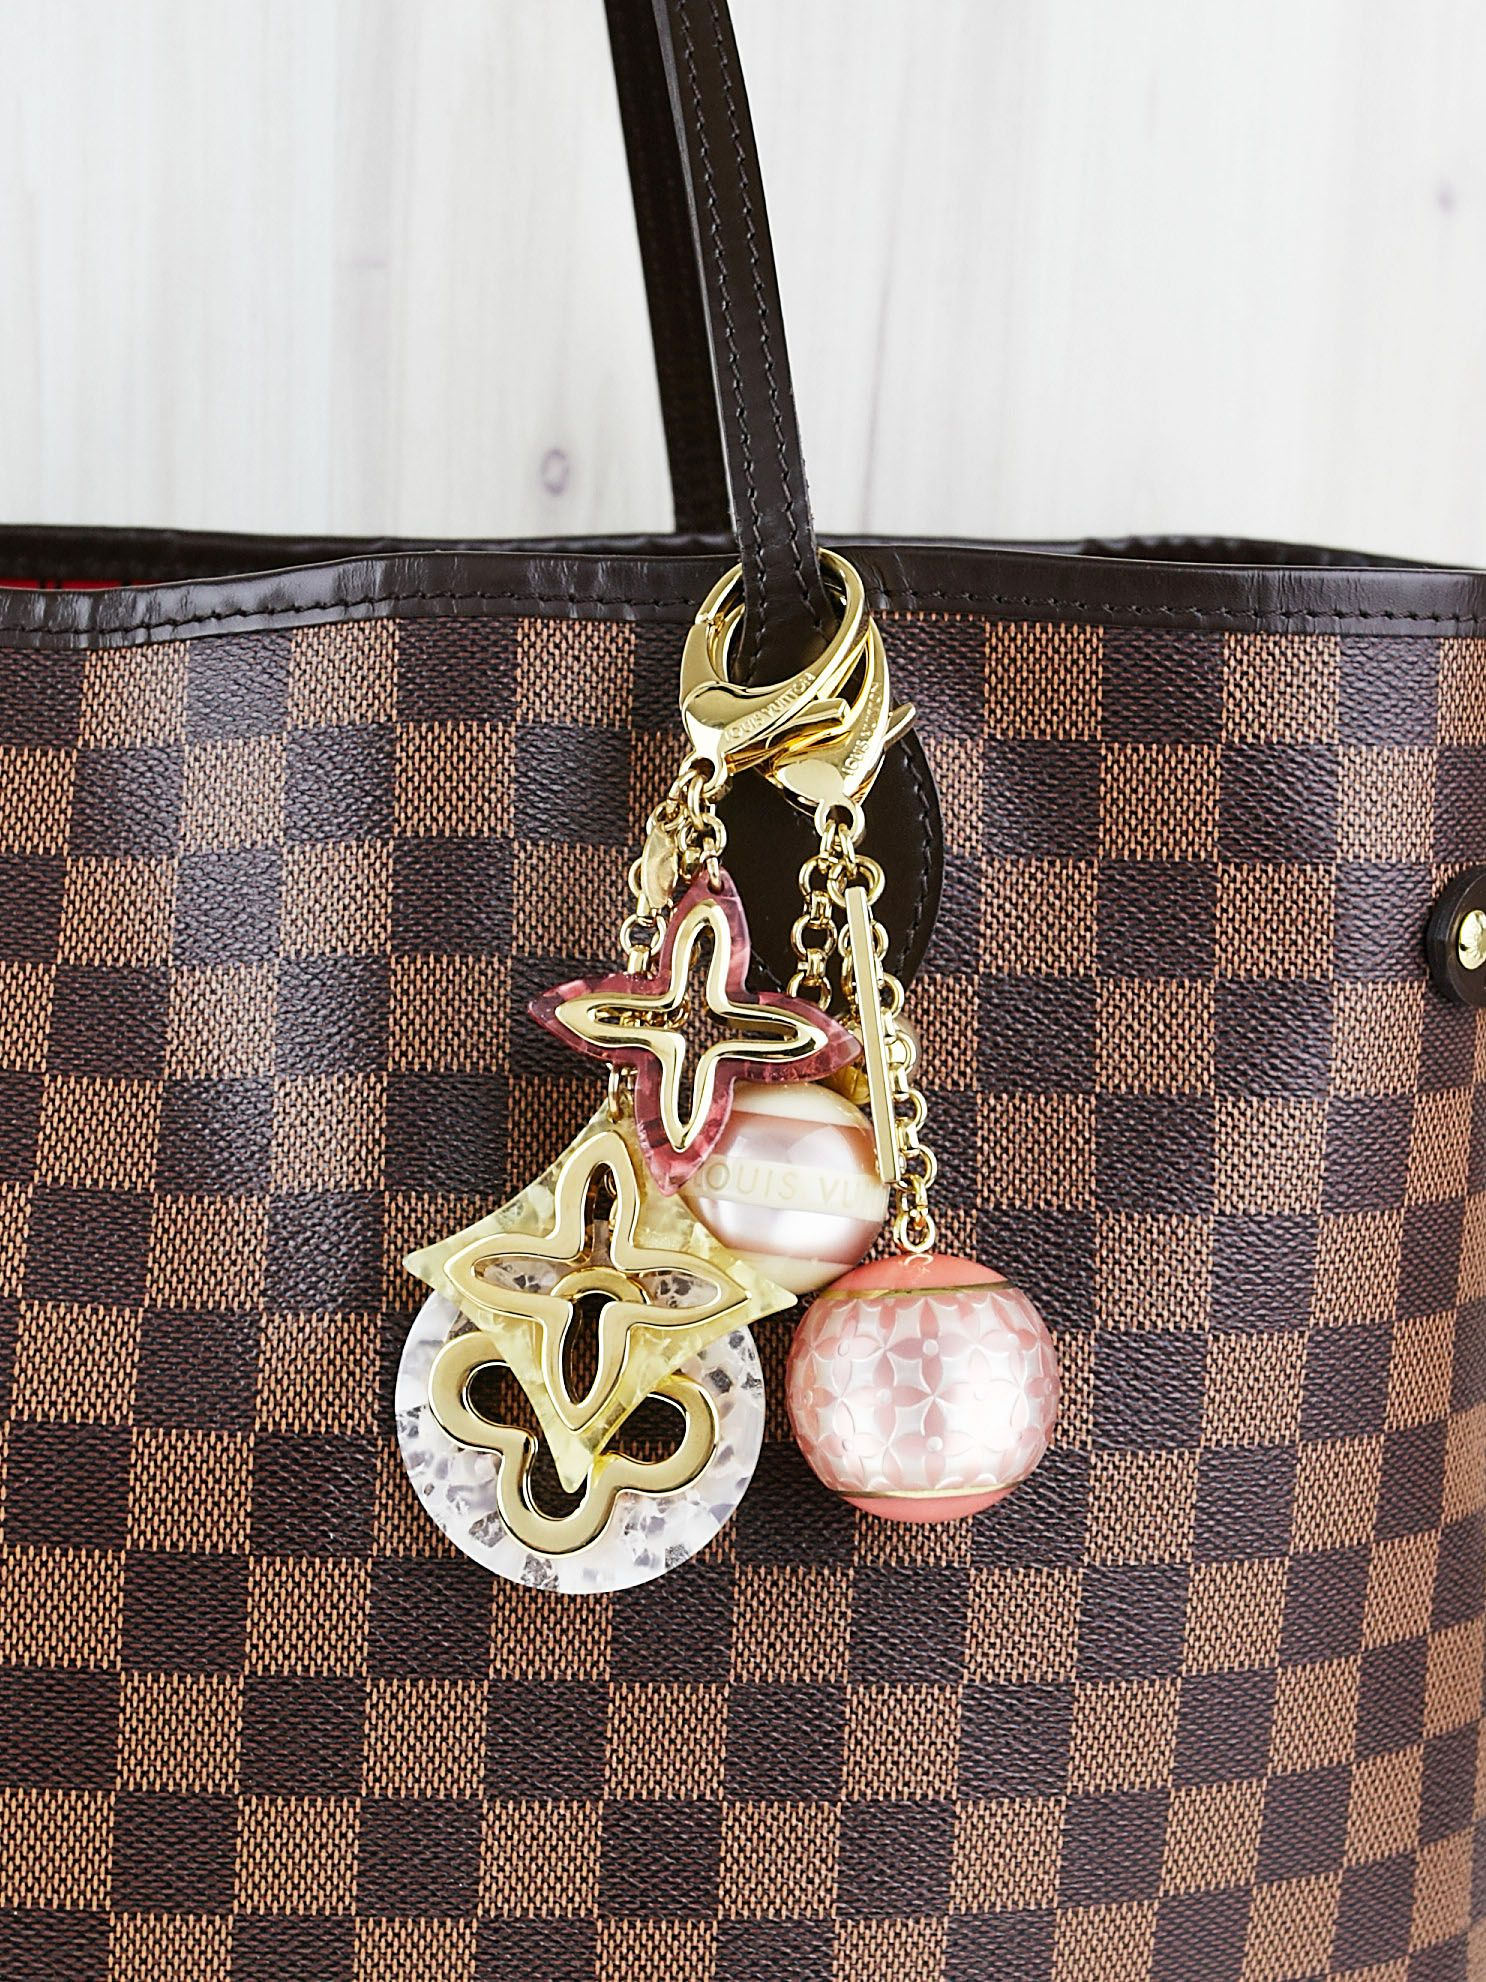 LV Bag Charms are the perfect way to add a little flare to your bags! -  Yoogi s Closet 4e2bc241a5410